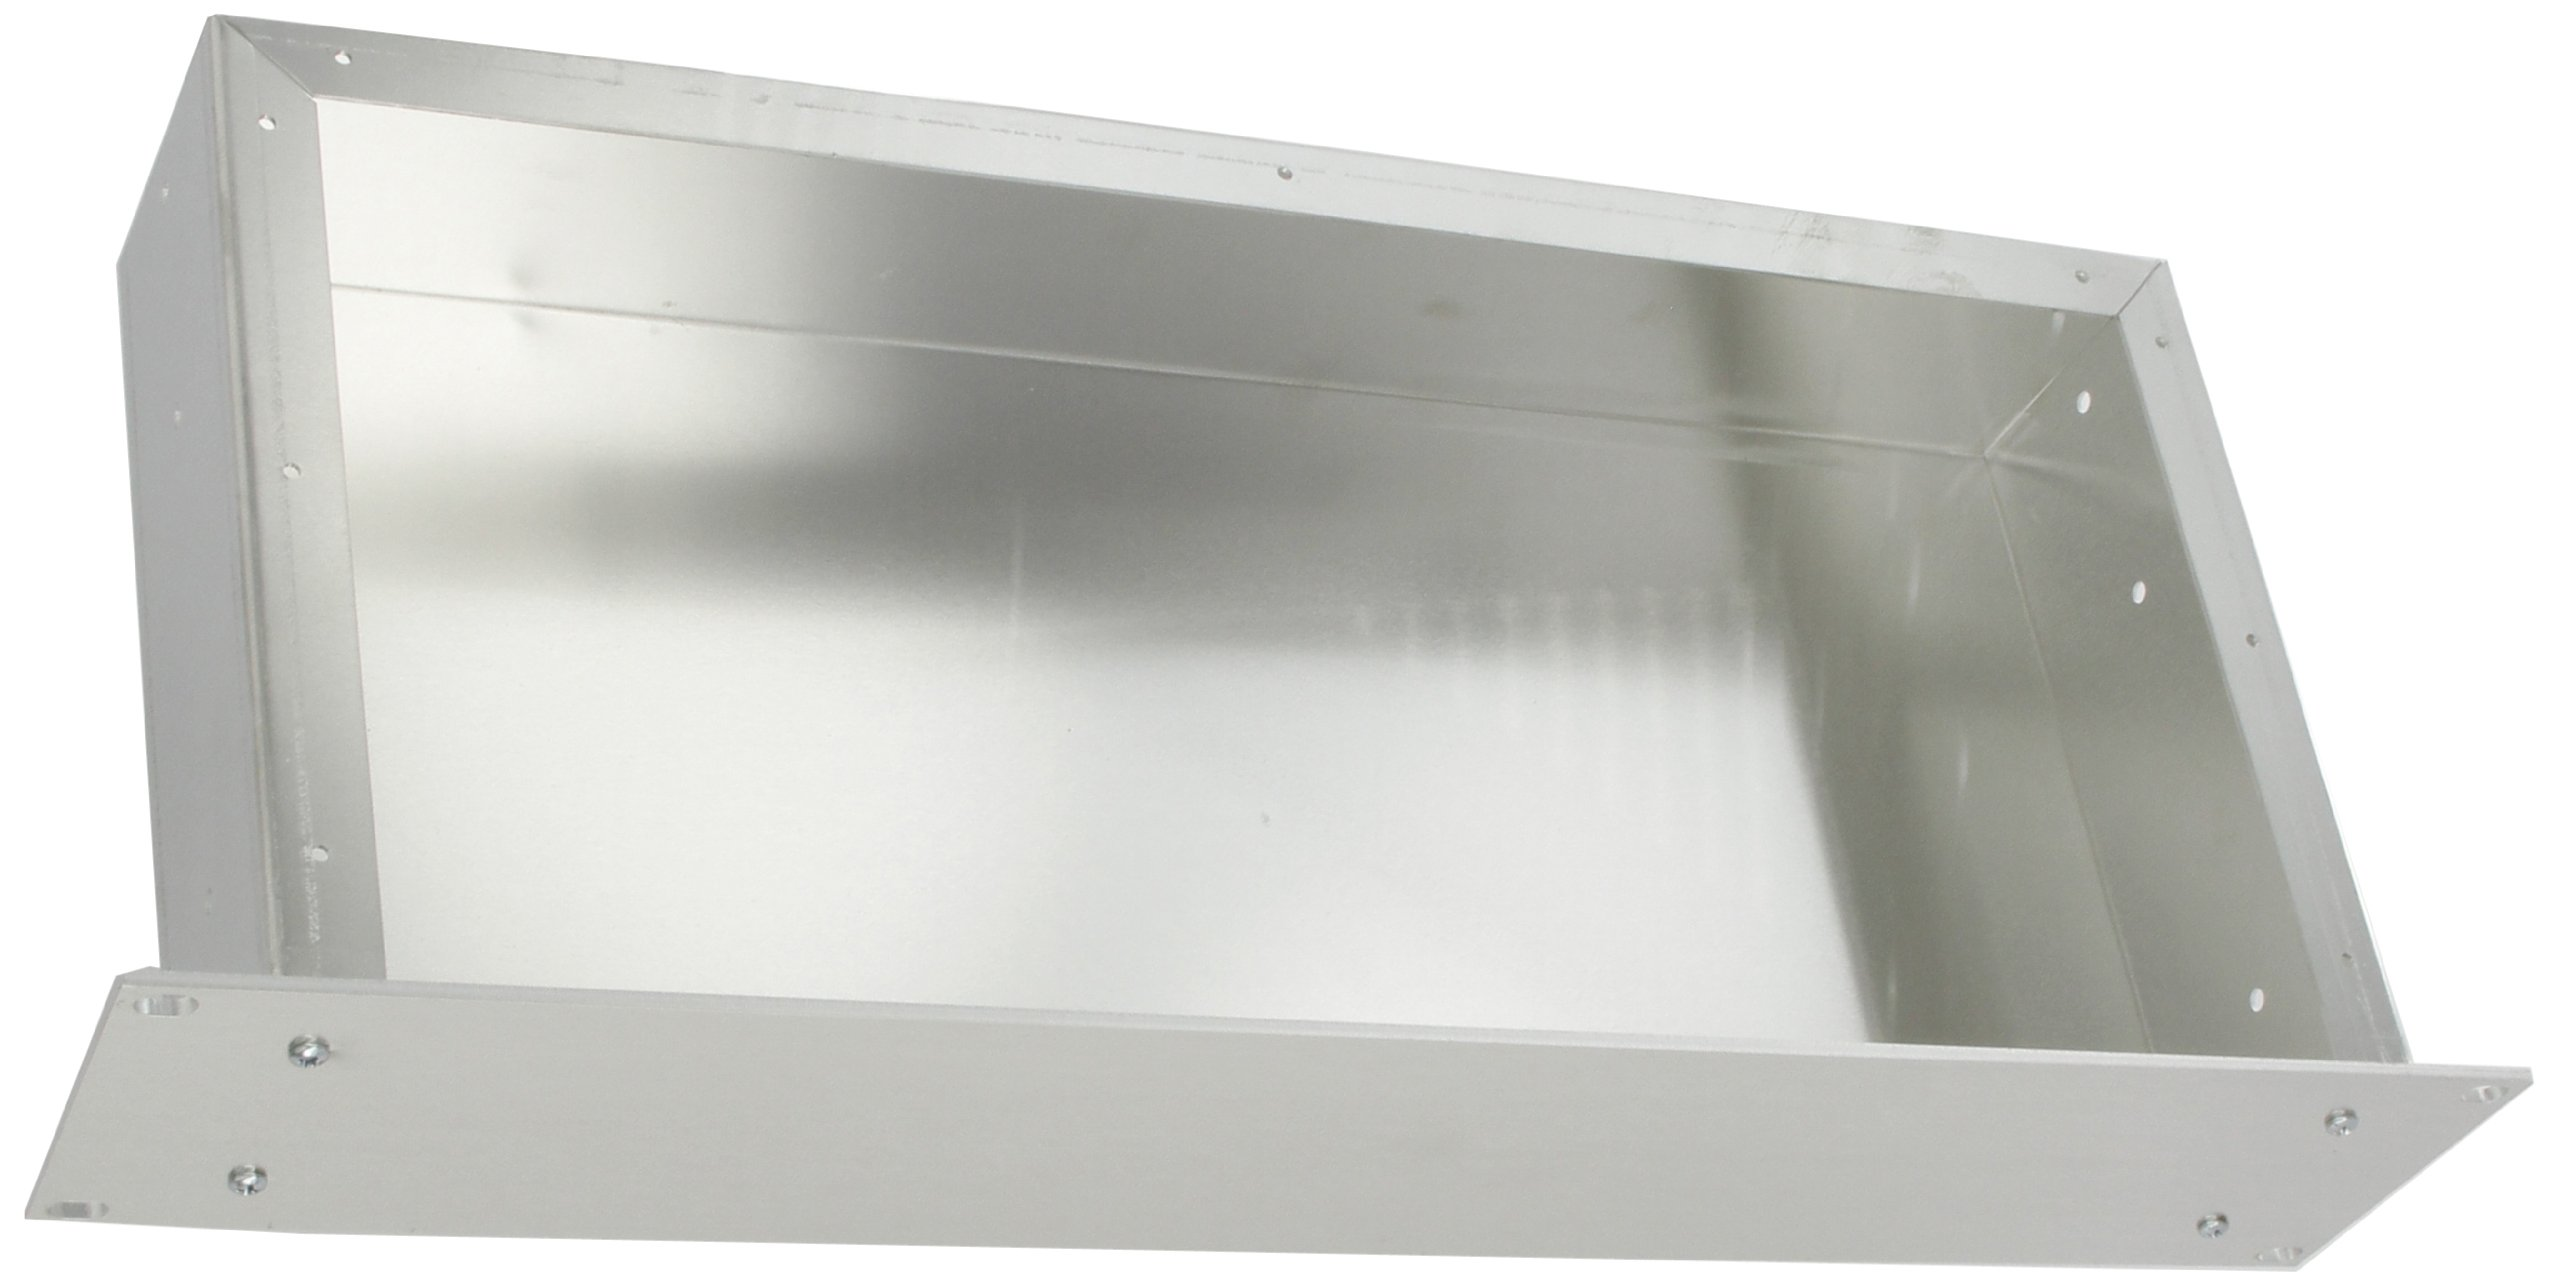 BUD Industries CH-14403 Aluminum Small Rack Mount Chassis, 17'' Width x 3-1/2'' Height x 8'' Depth, Natural Finish